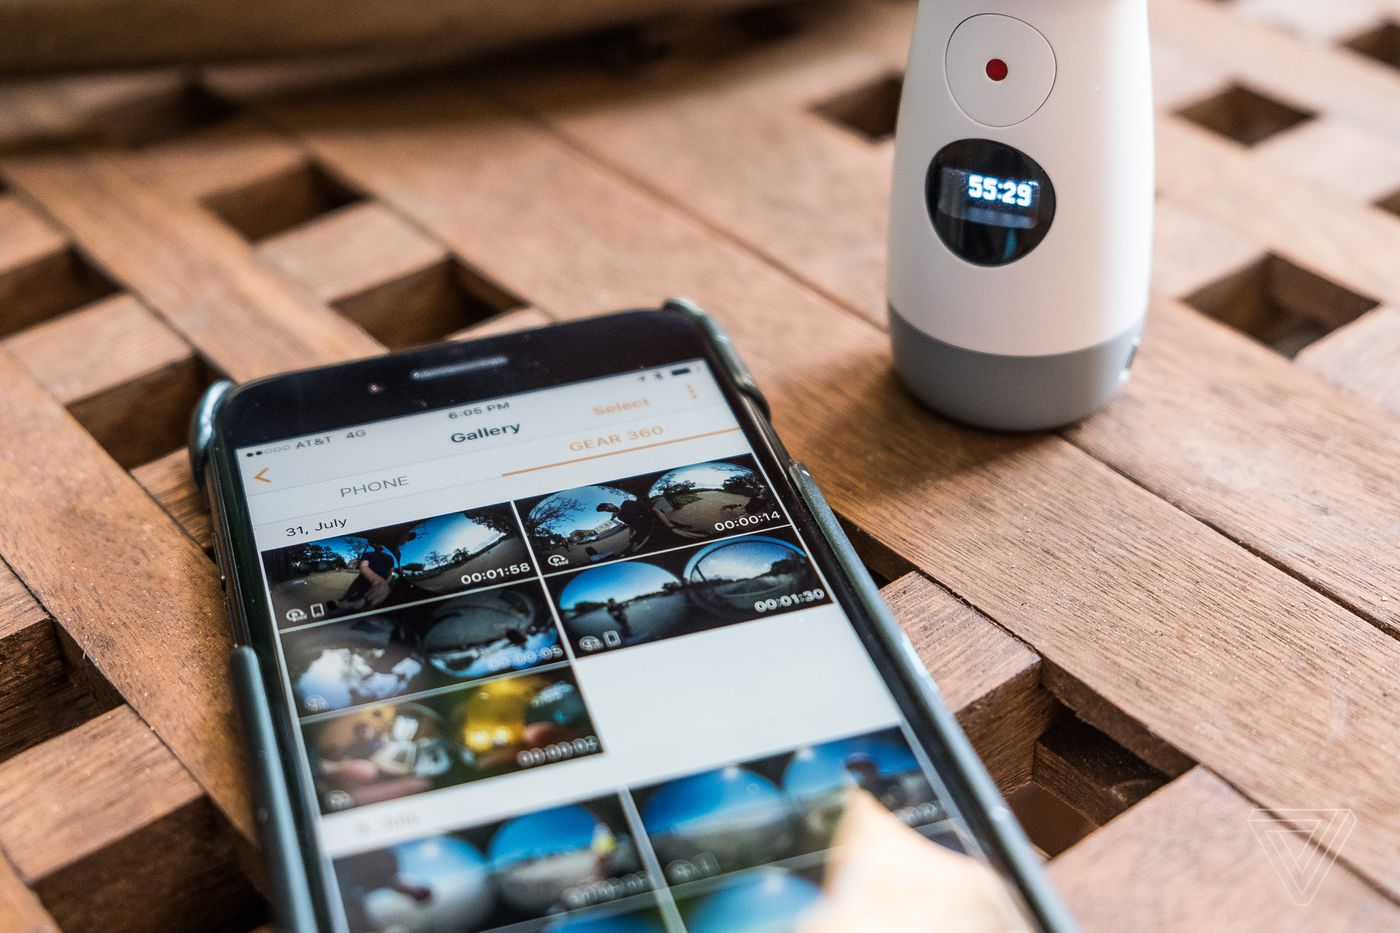 Samsung Gear 360 (2017) review - The Verge